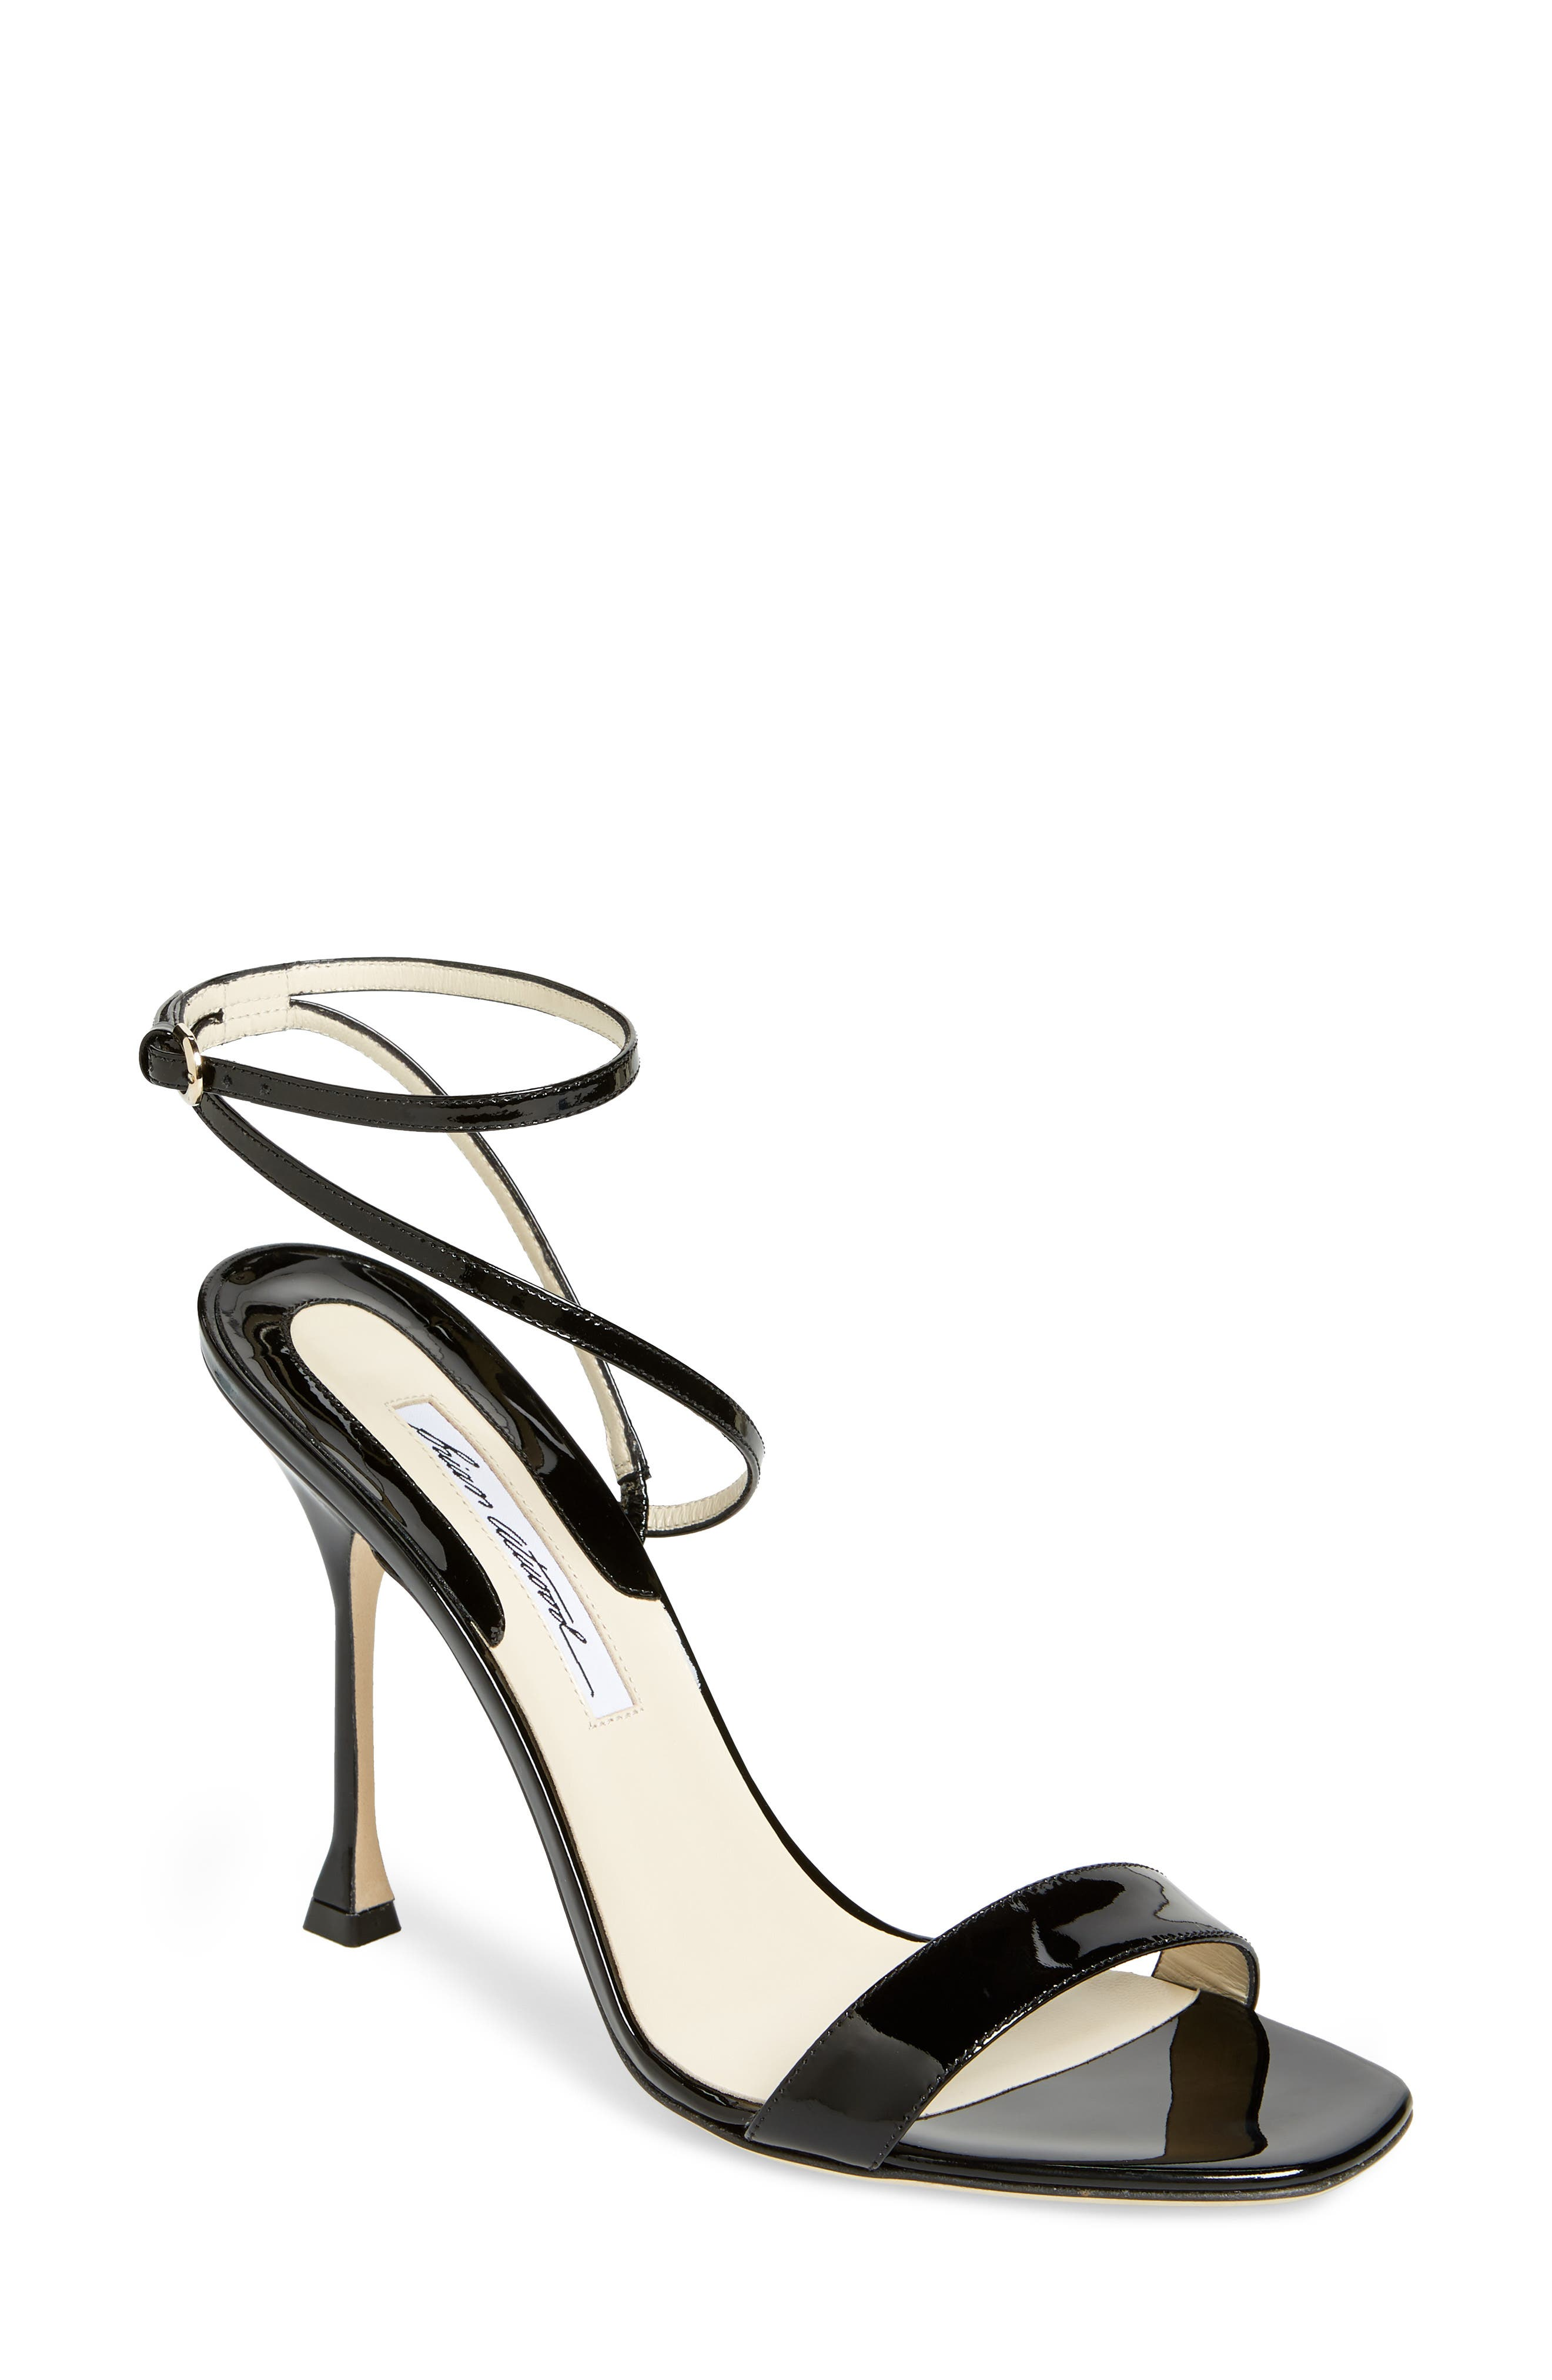 BRIAN ATWOOD Sienna Ankle Strap Sandal in Black Patent